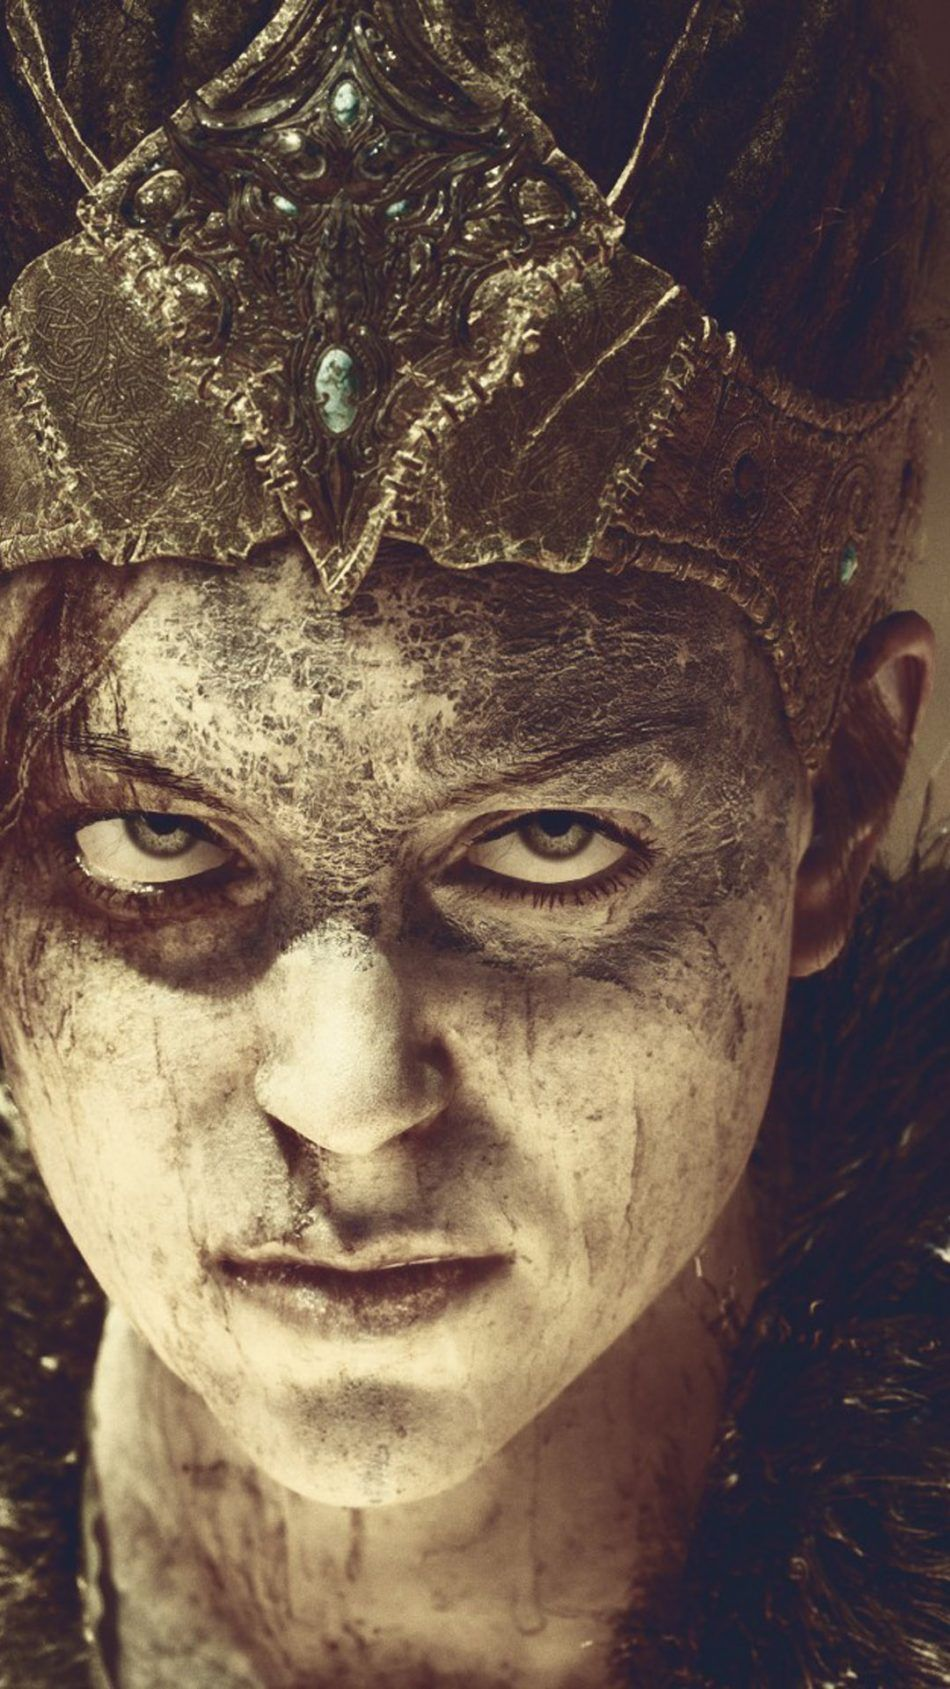 Hellblade Senua S Sacrifice Free 4k Ultra Hd Mobile Wallpaper